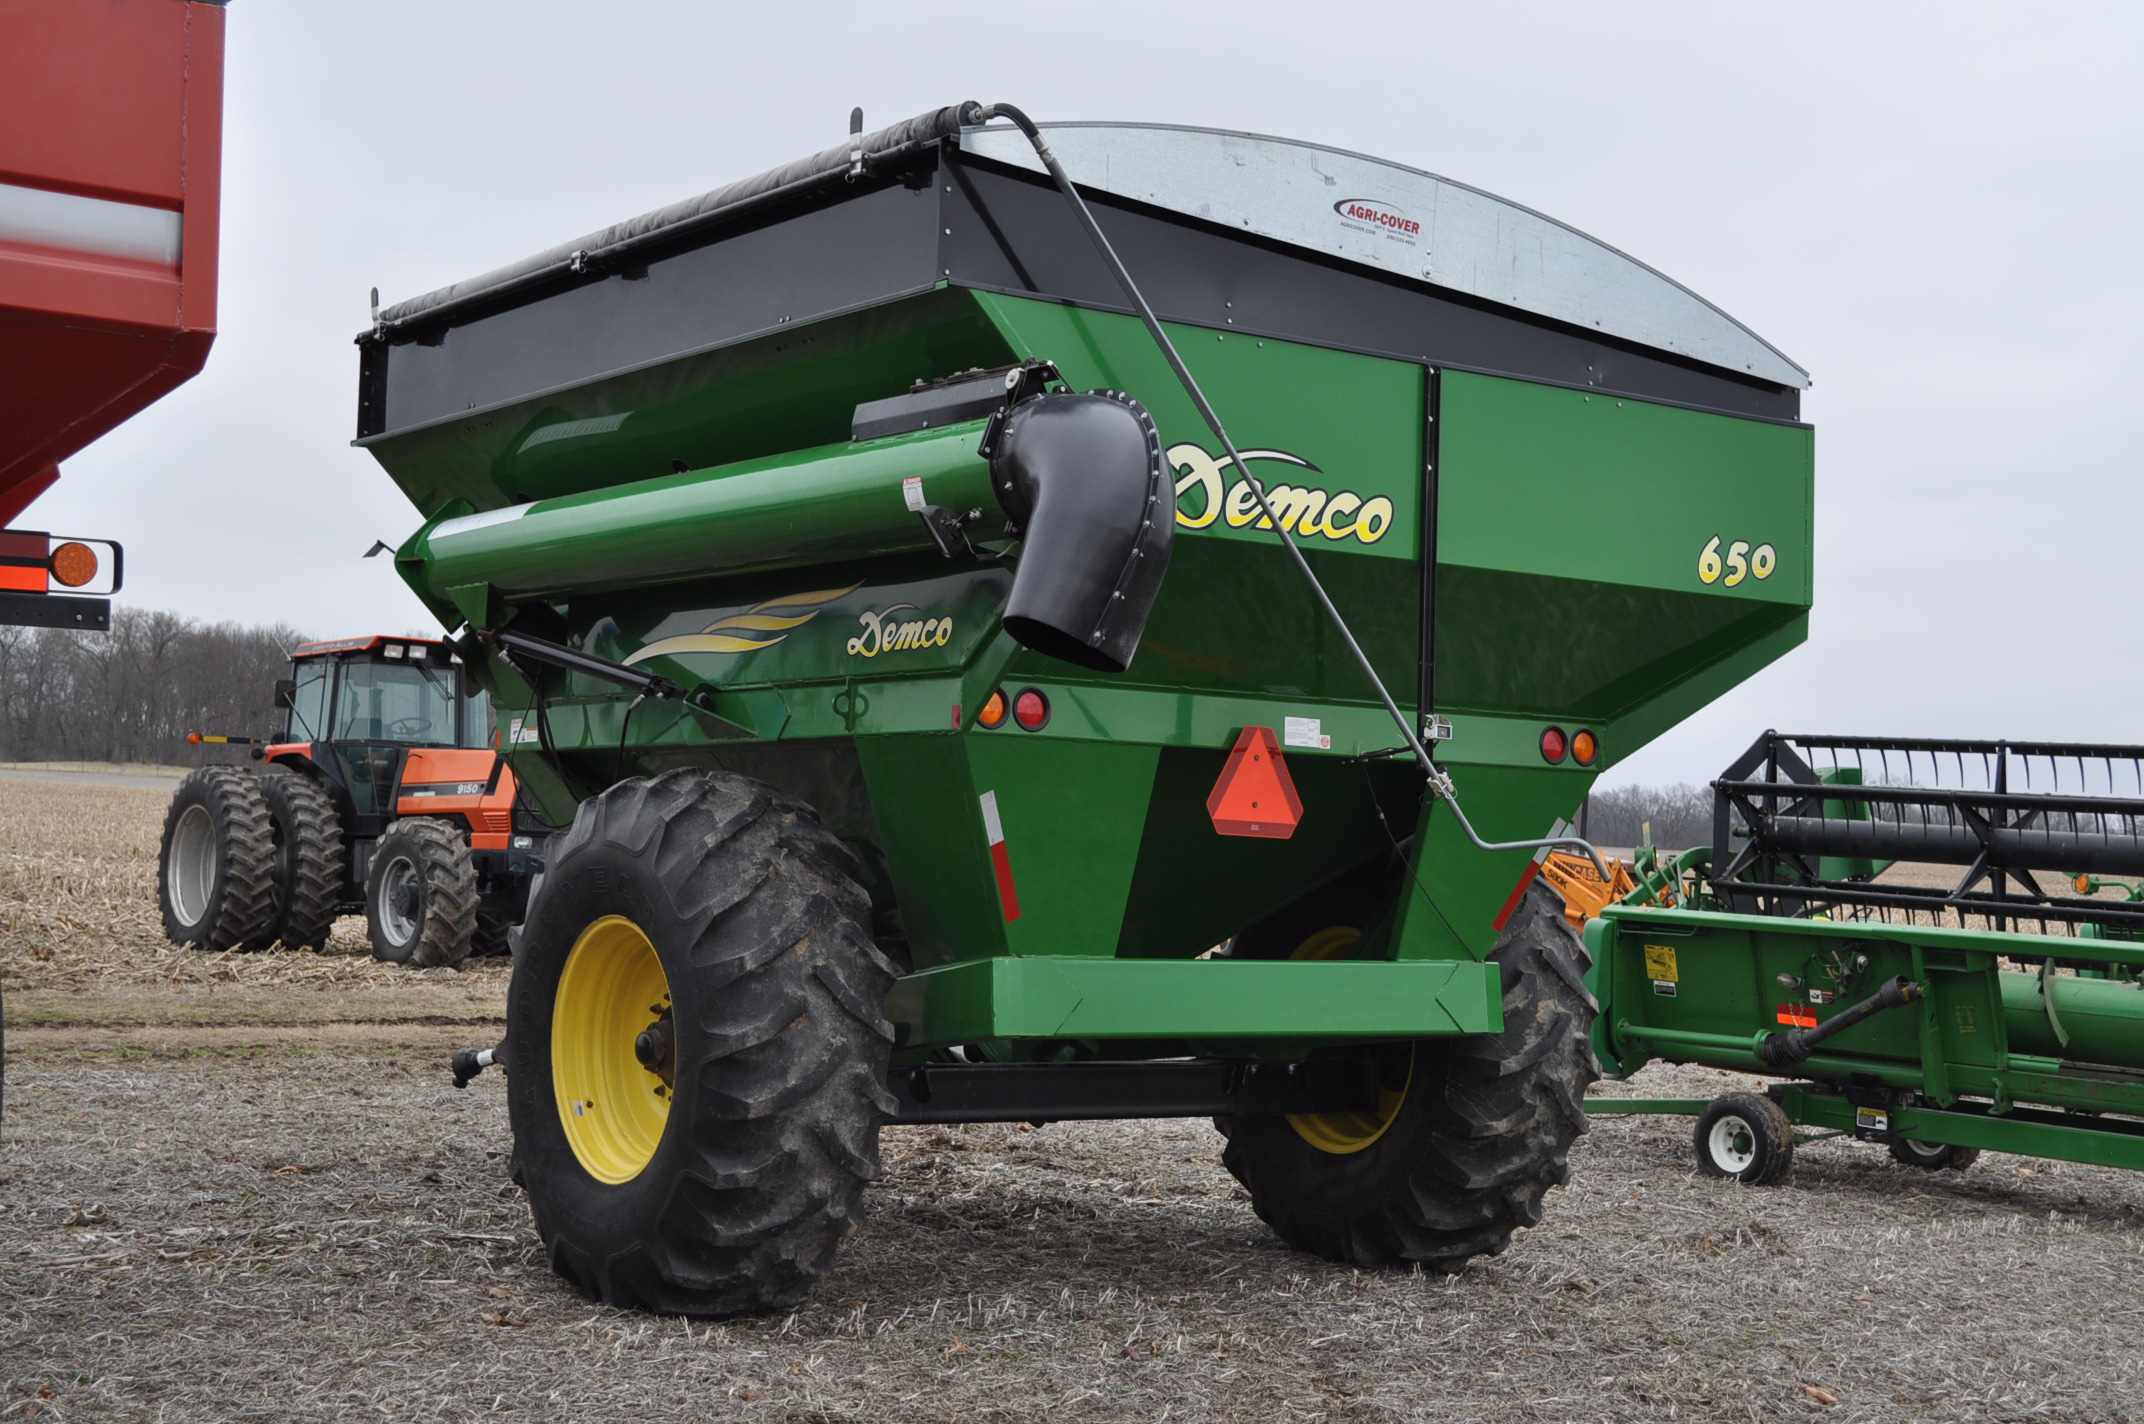 Demco 650 grain cart, 24.5-32 tires, roll tarp, hyd swing spout, Digistar scales, corner auger, rear - Image 2 of 12